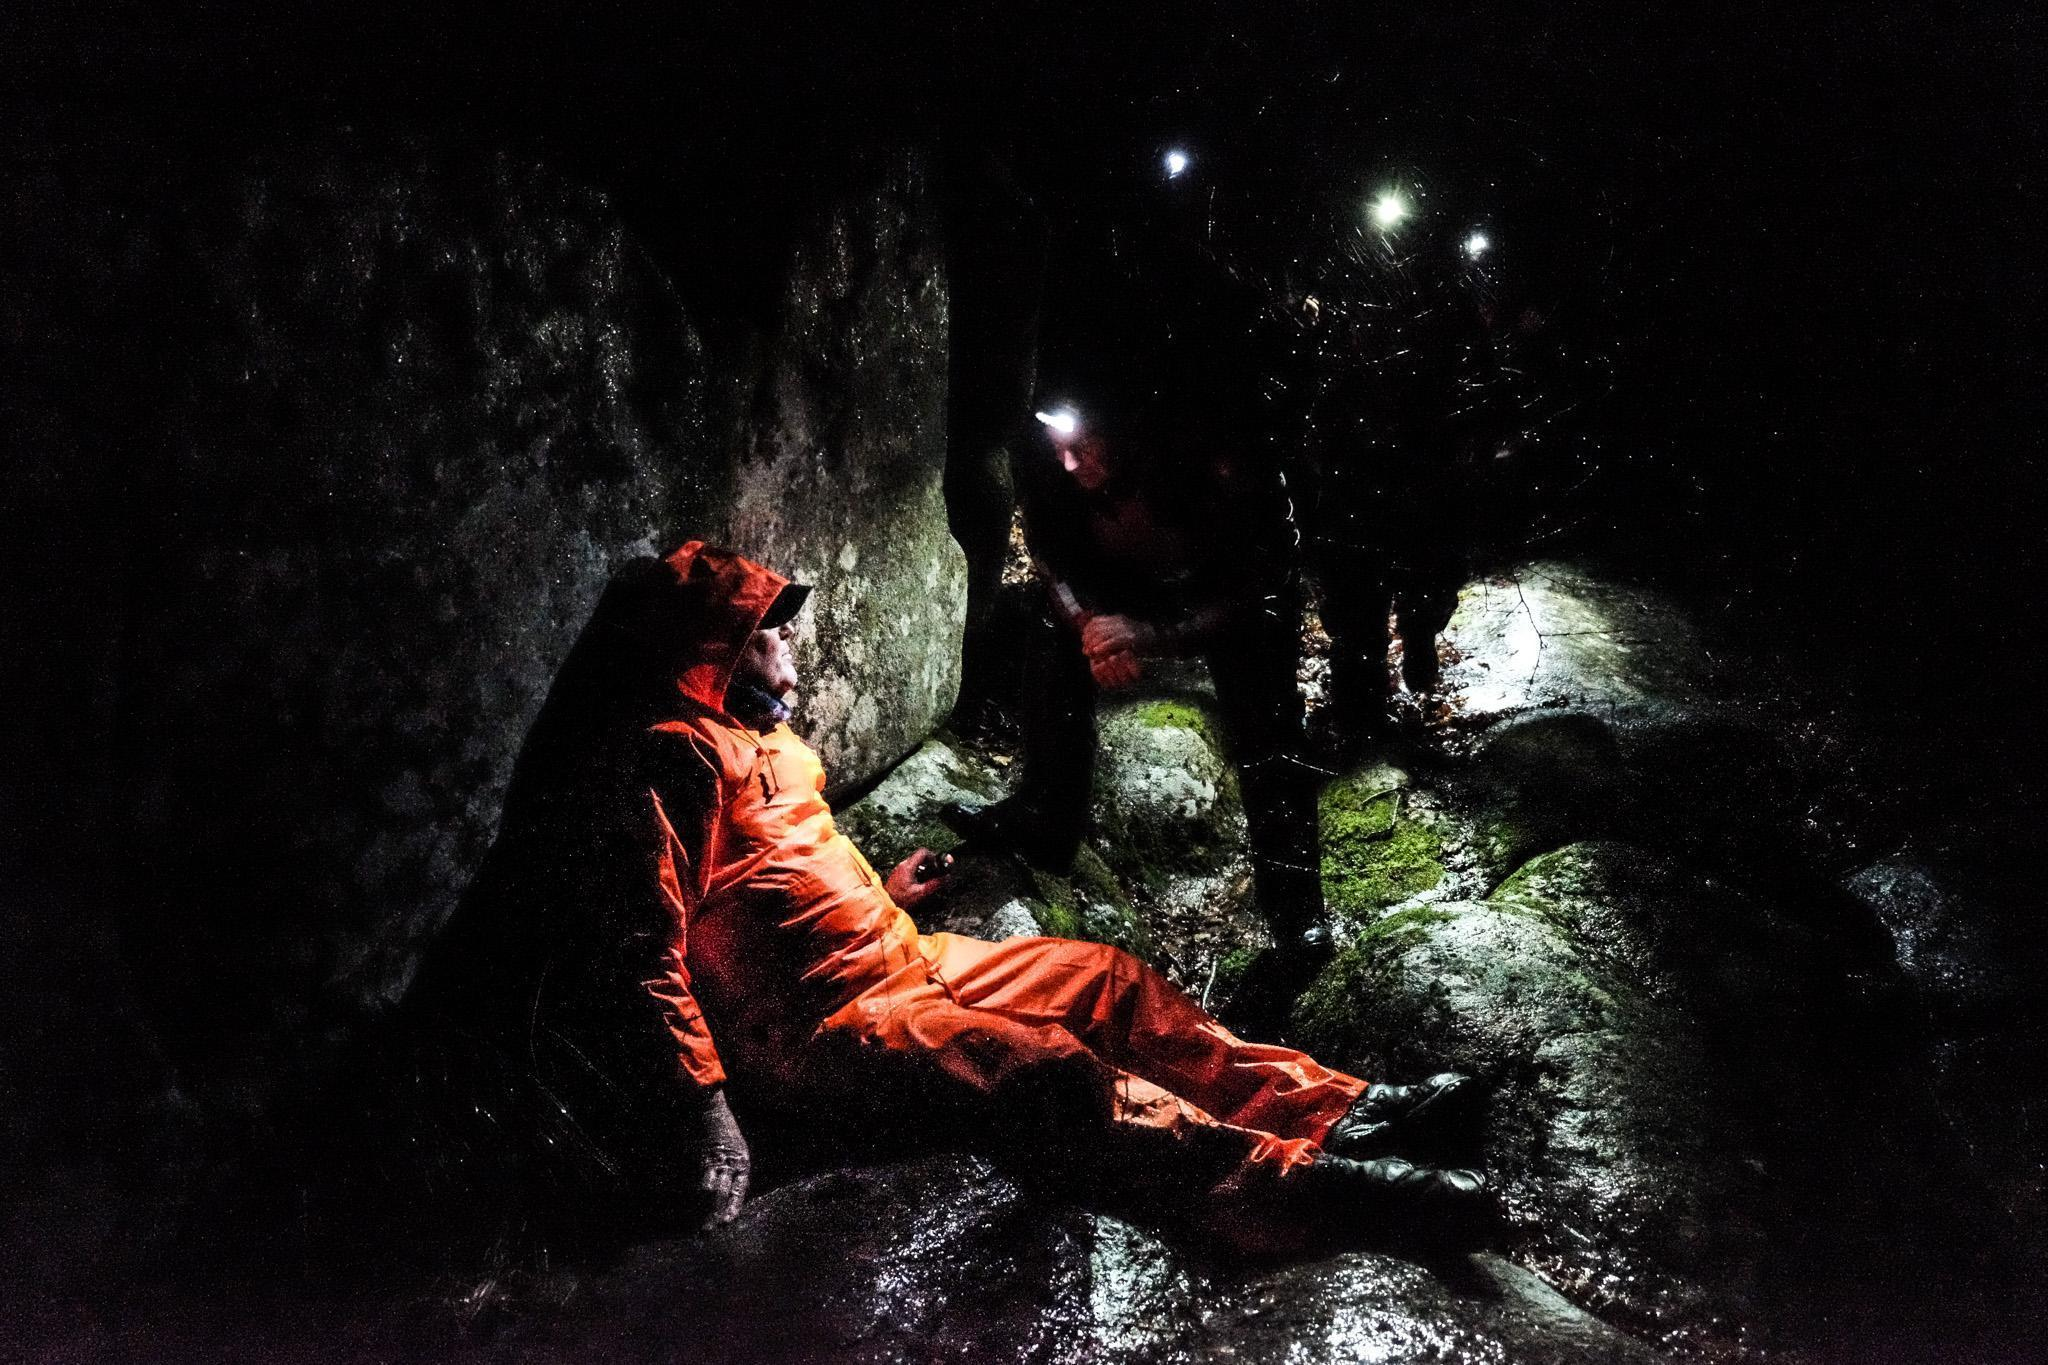 Dartmoor Search and Rescue Ashburton assist the emergency service in finding the lost, missing, injured and vulnerable, not just on Dartmoor but across Devon including rural and urban areas such as Exeter and Torbay